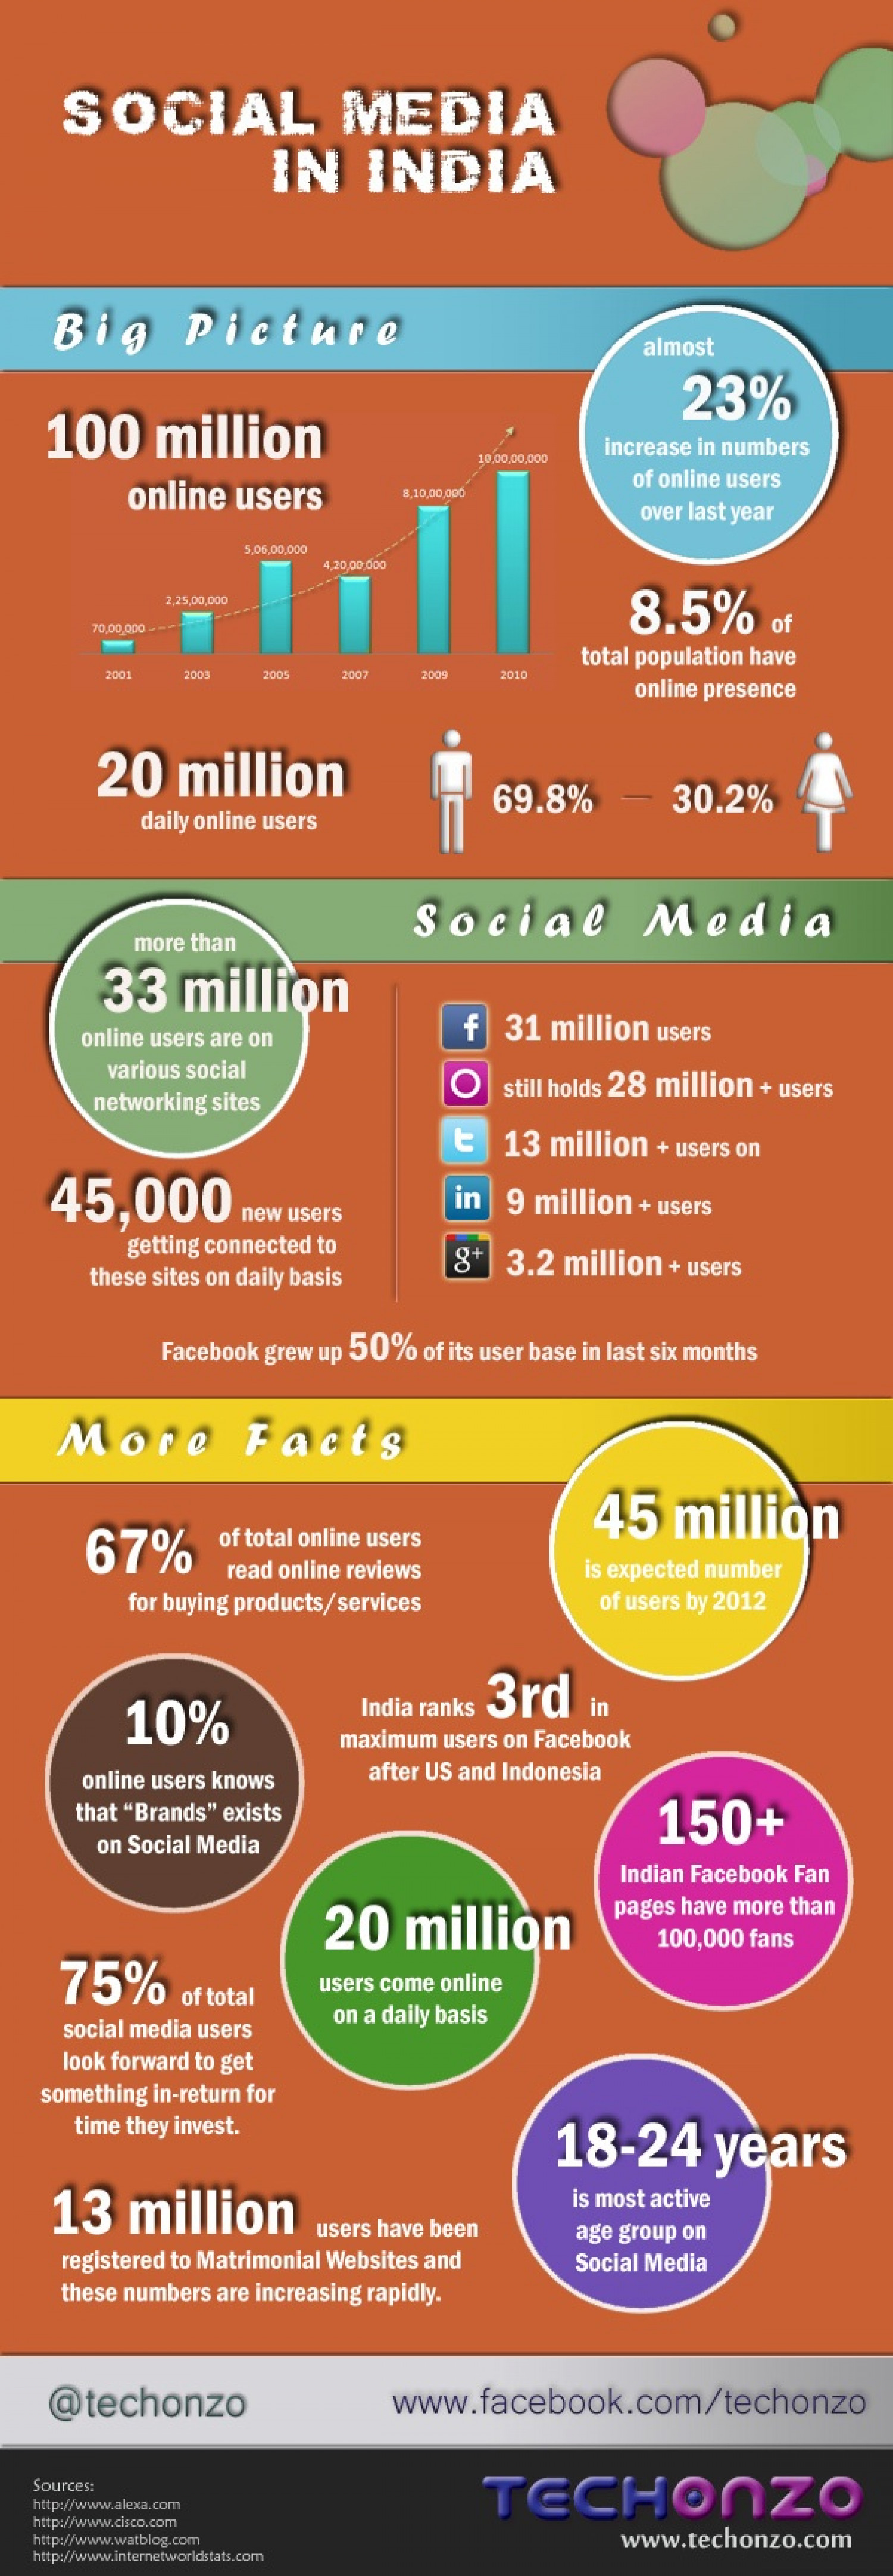 Social Media in India Infographic